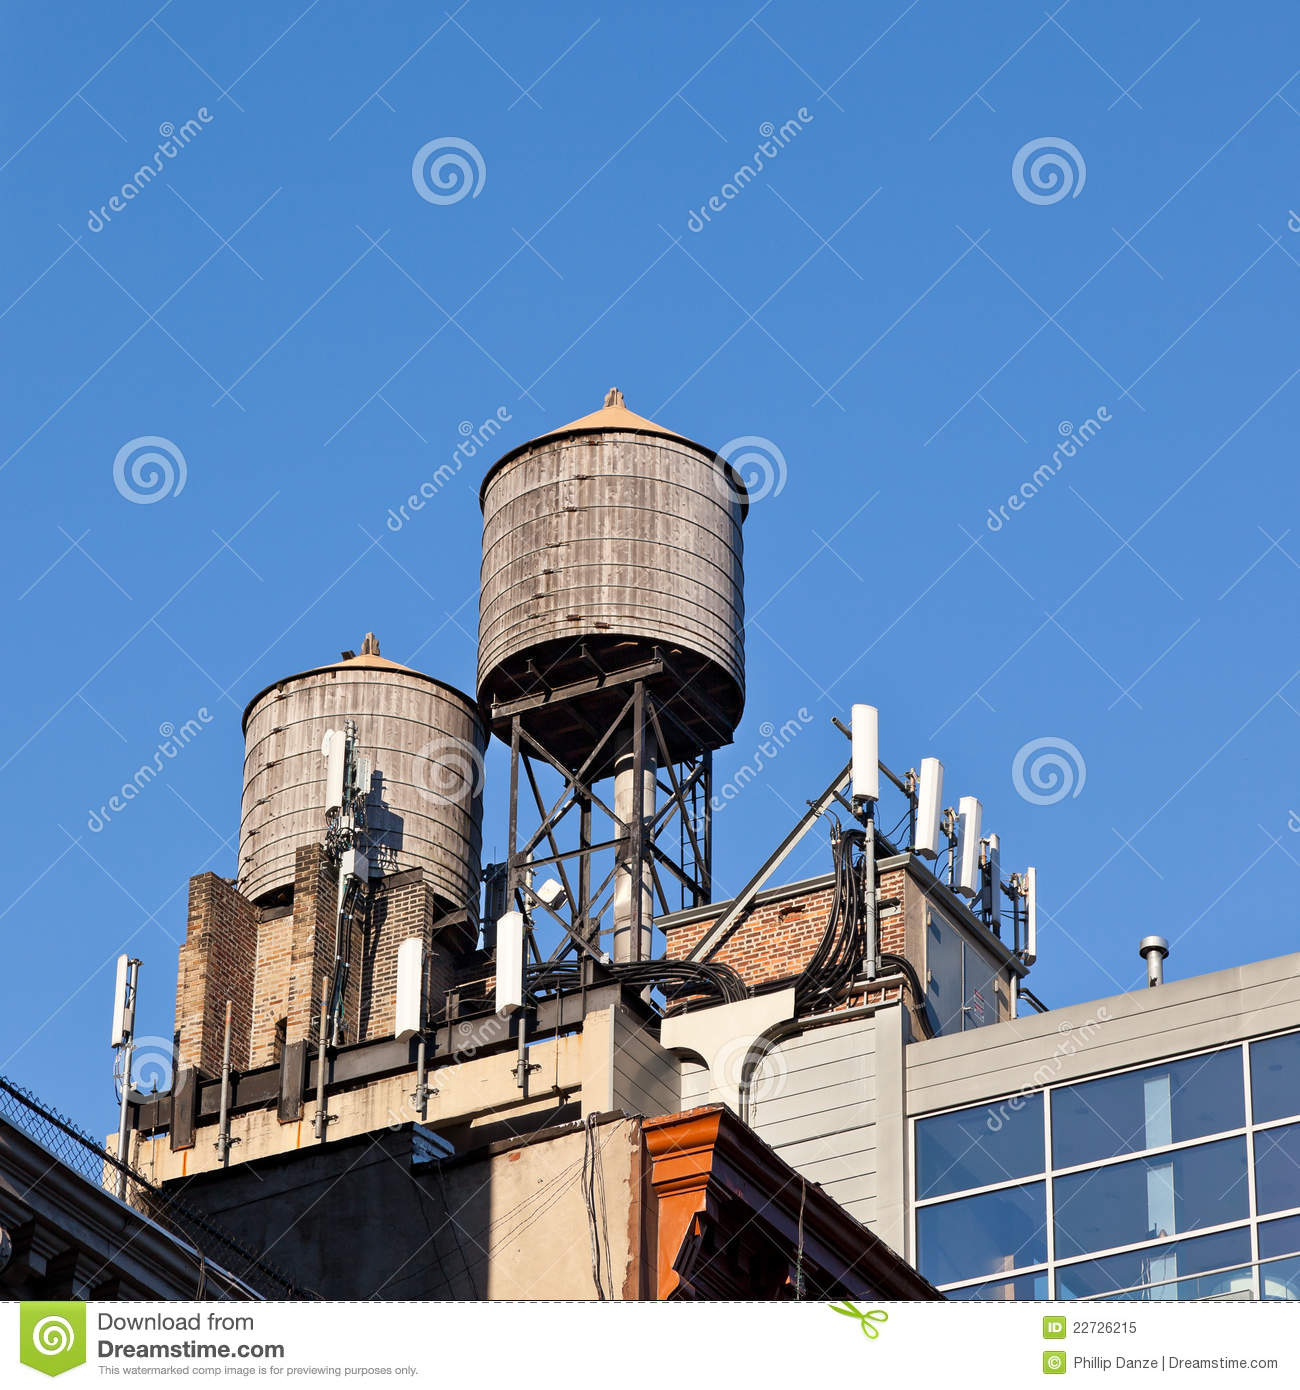 Water tanks and cell phone receivers